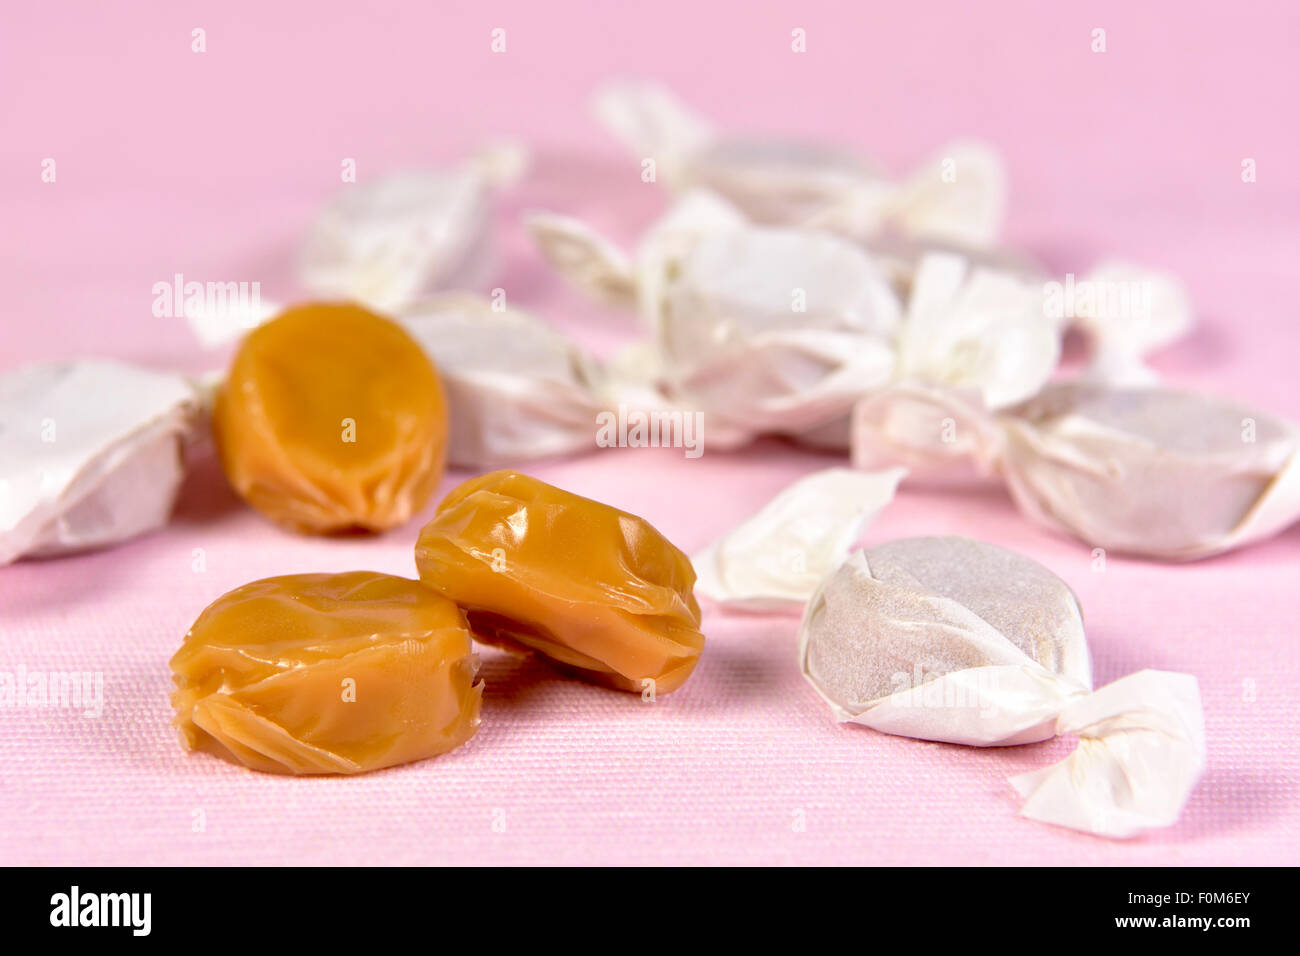 Toffees on pink background, some open and some in wrappers - Stock Image